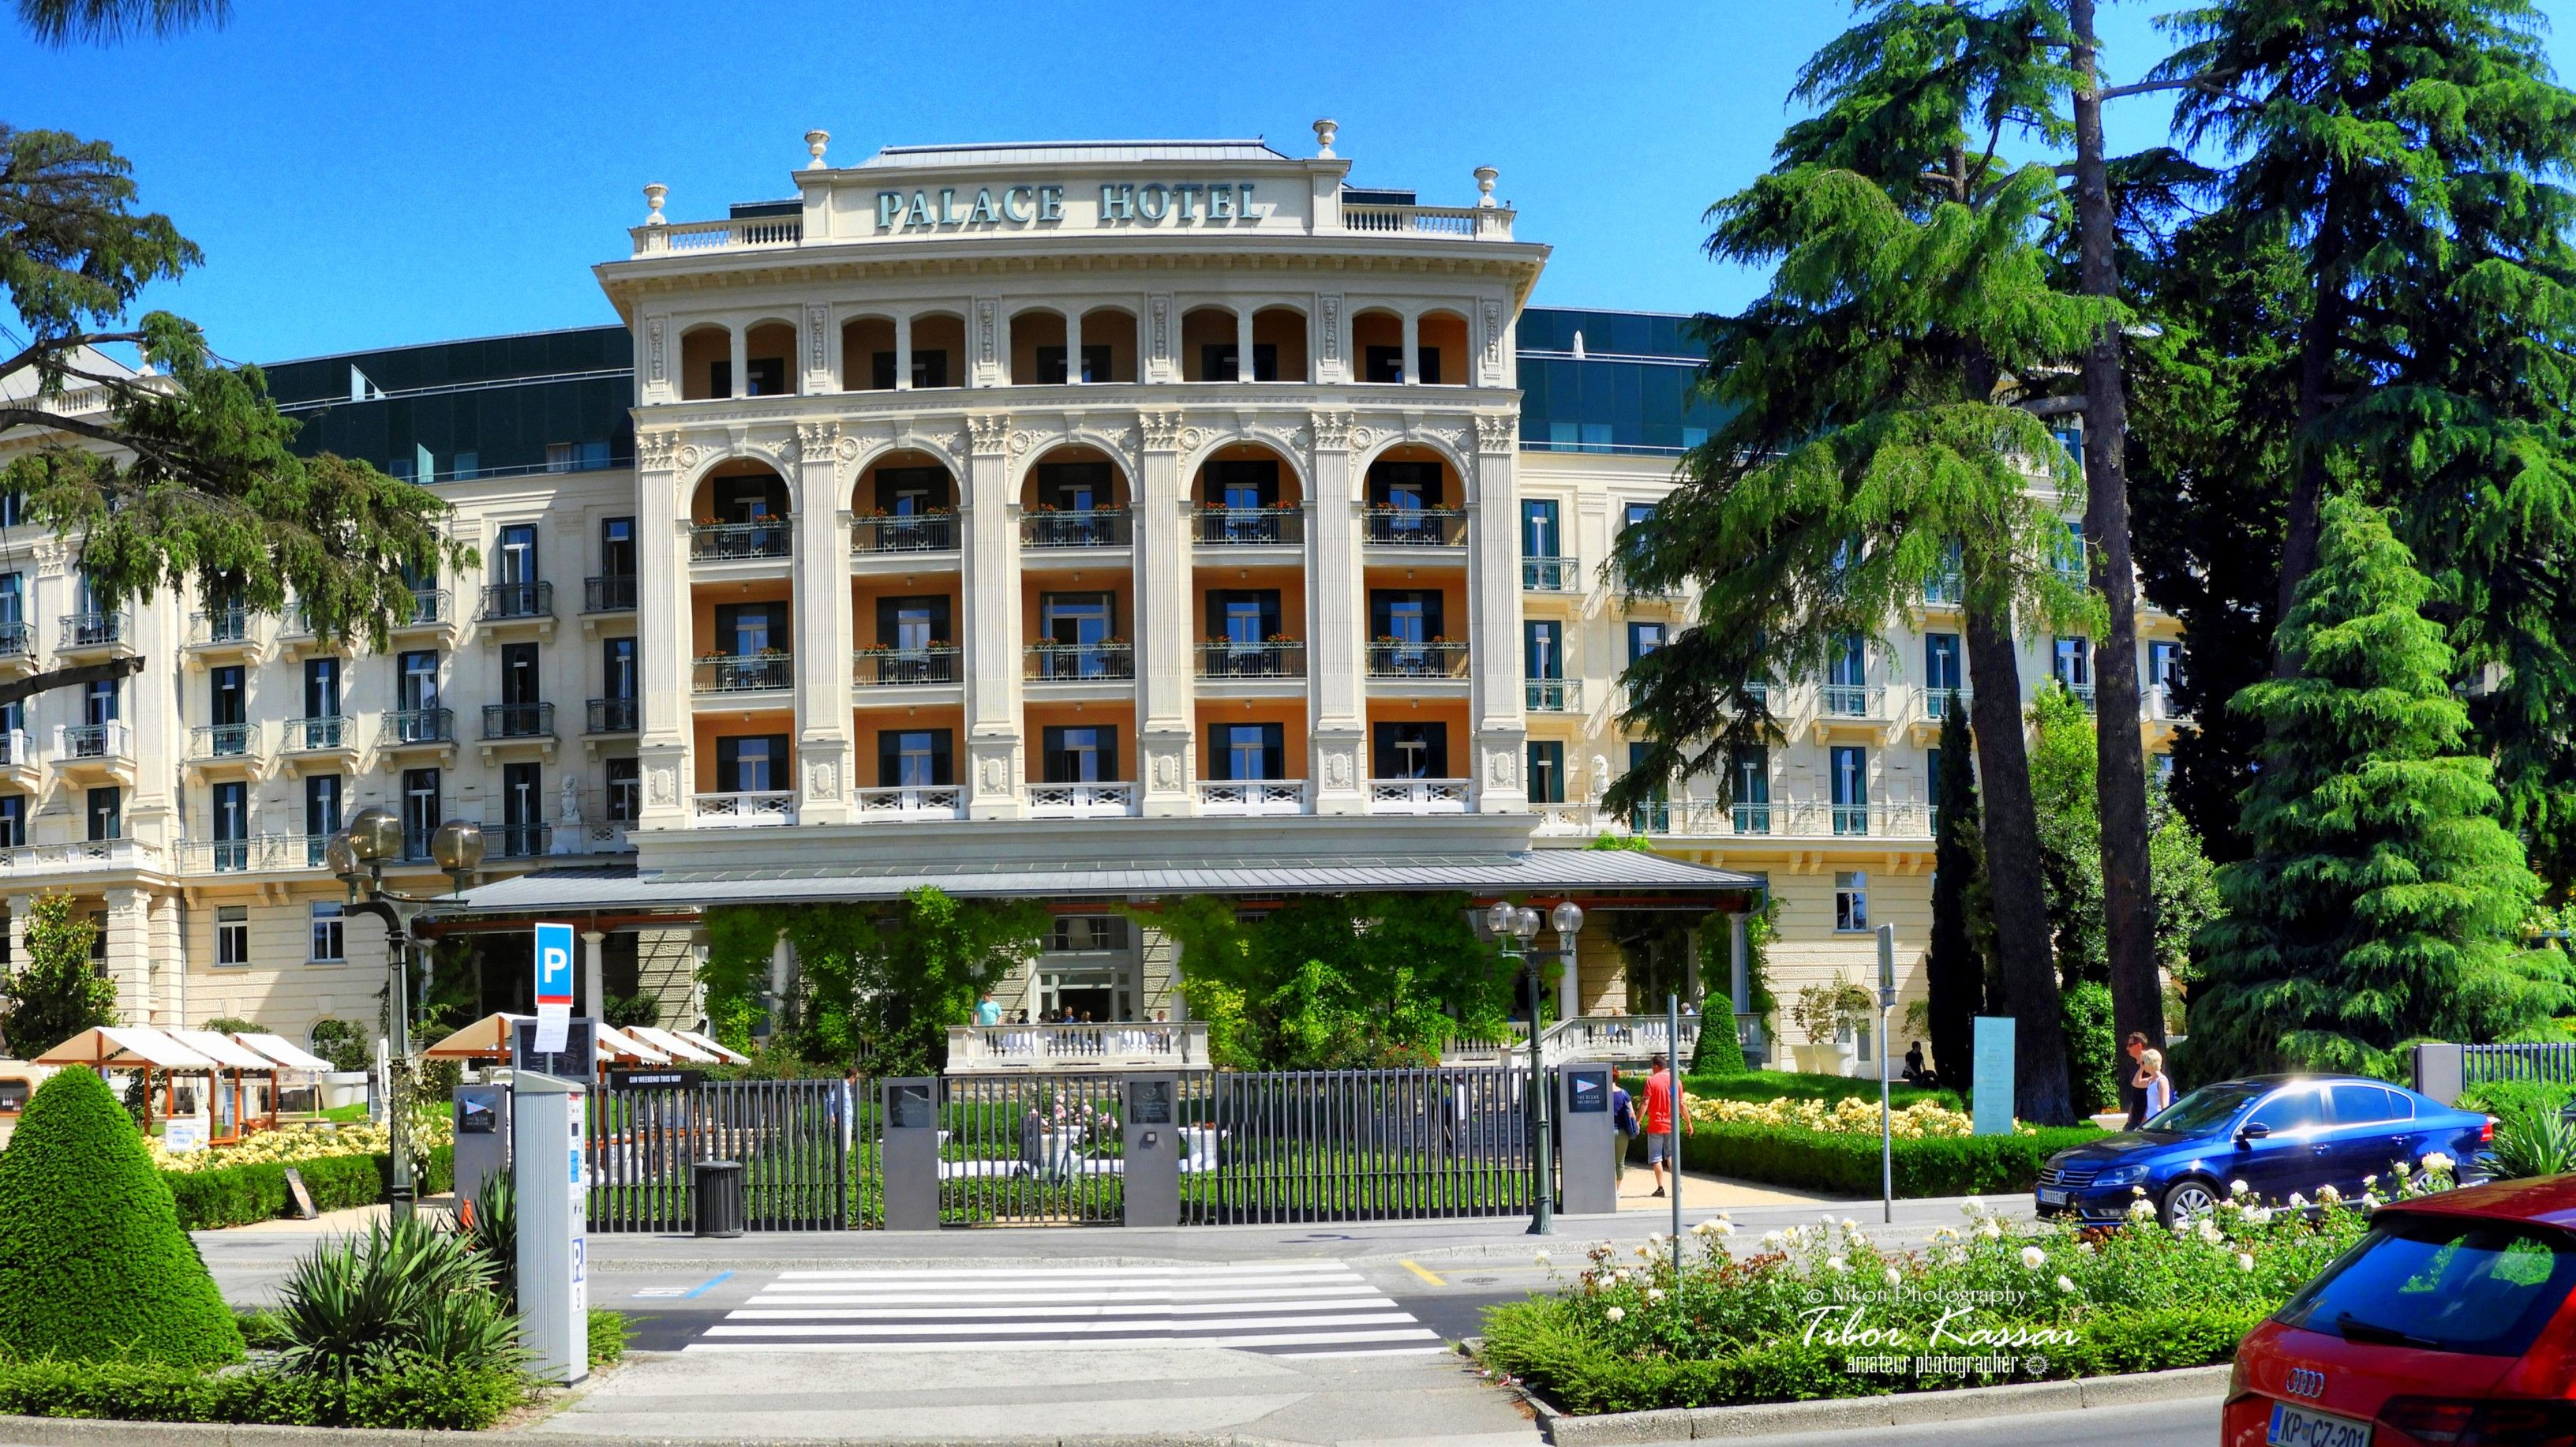 Palace Hotel In Portoroz Port Of Roses Slovenia Nikon - Palace-hotel-in-slovenia